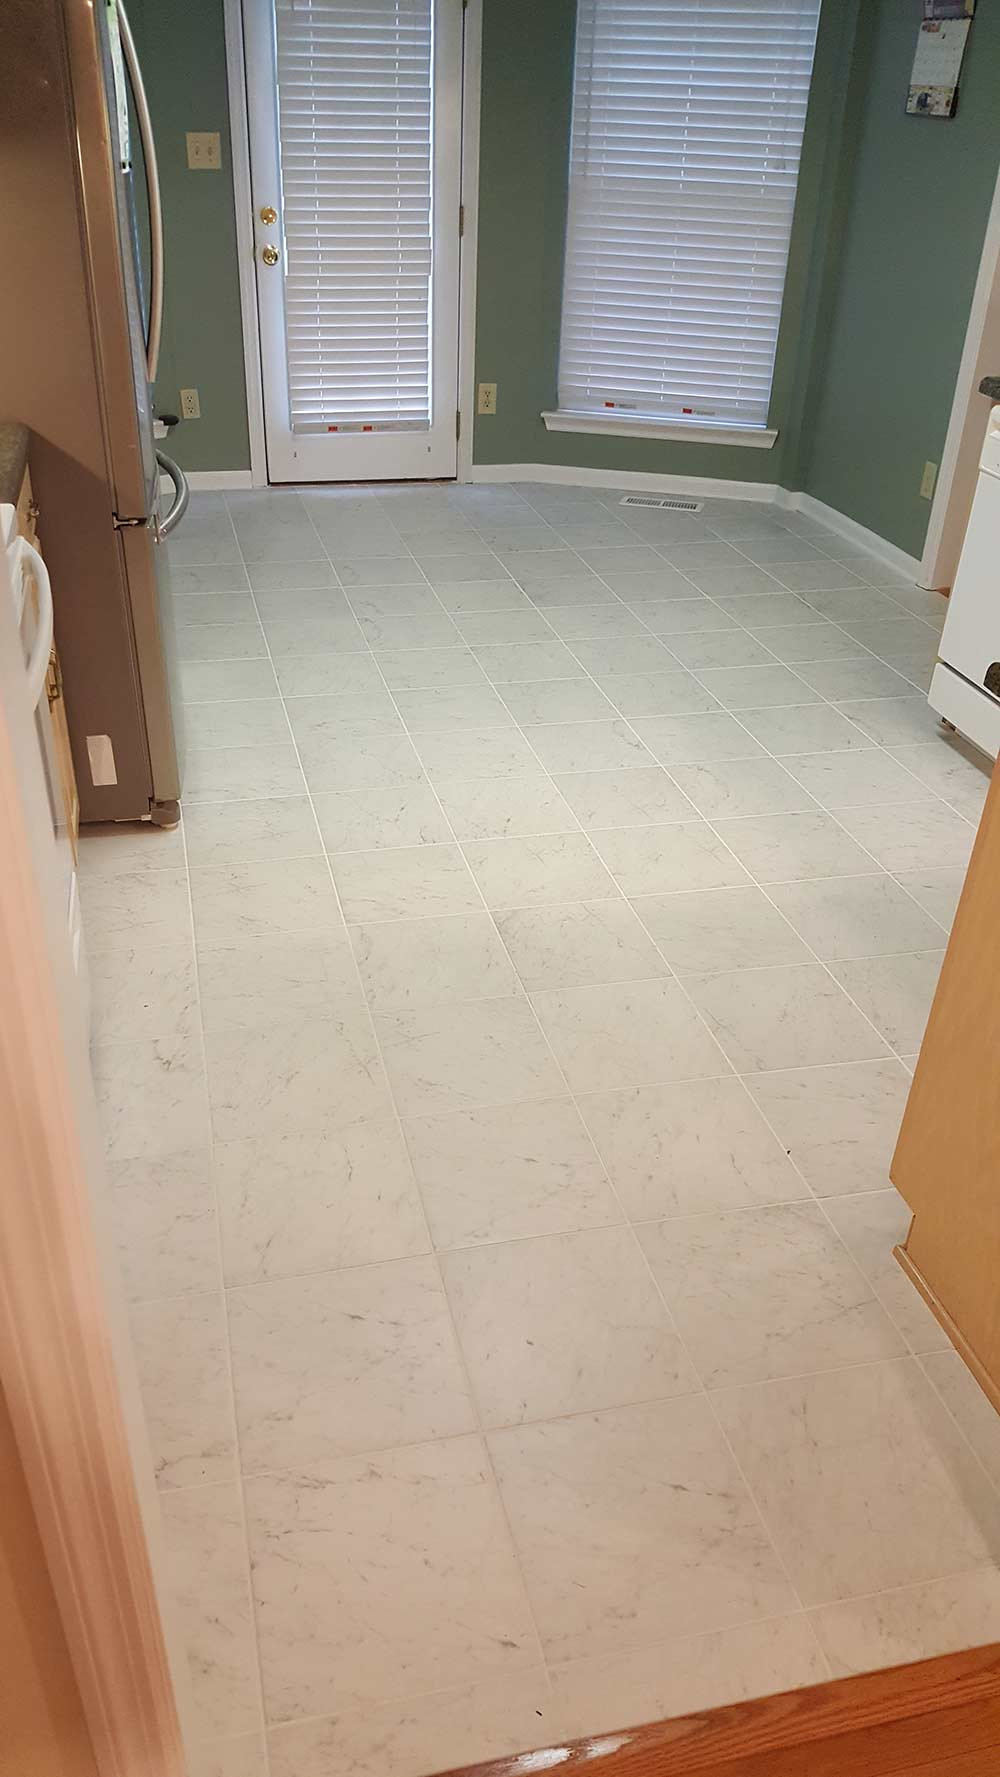 Chattanooga tile installation repair complete flooring service chattanooga tile installation chattanooga tile installation dailygadgetfo Gallery